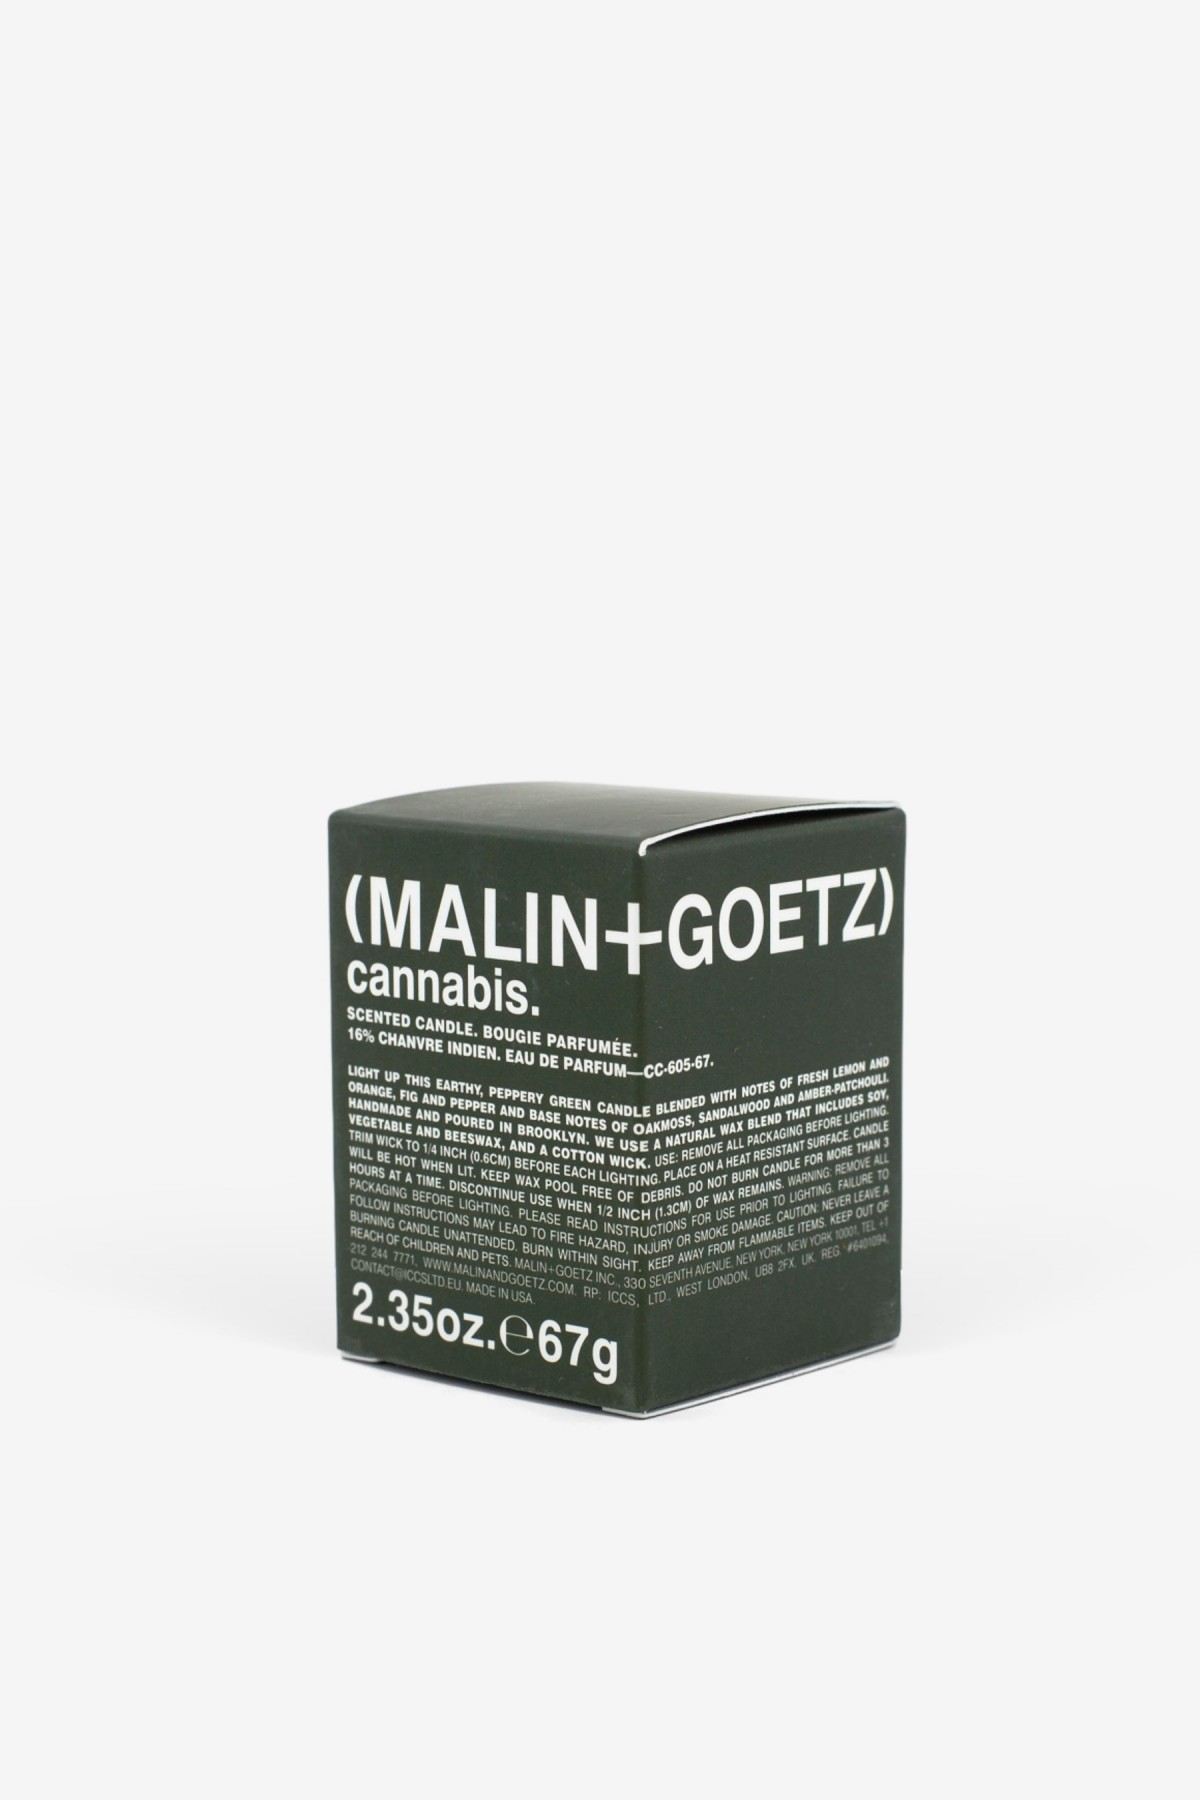 Malin+Goetz Cannabis Votive 67g in